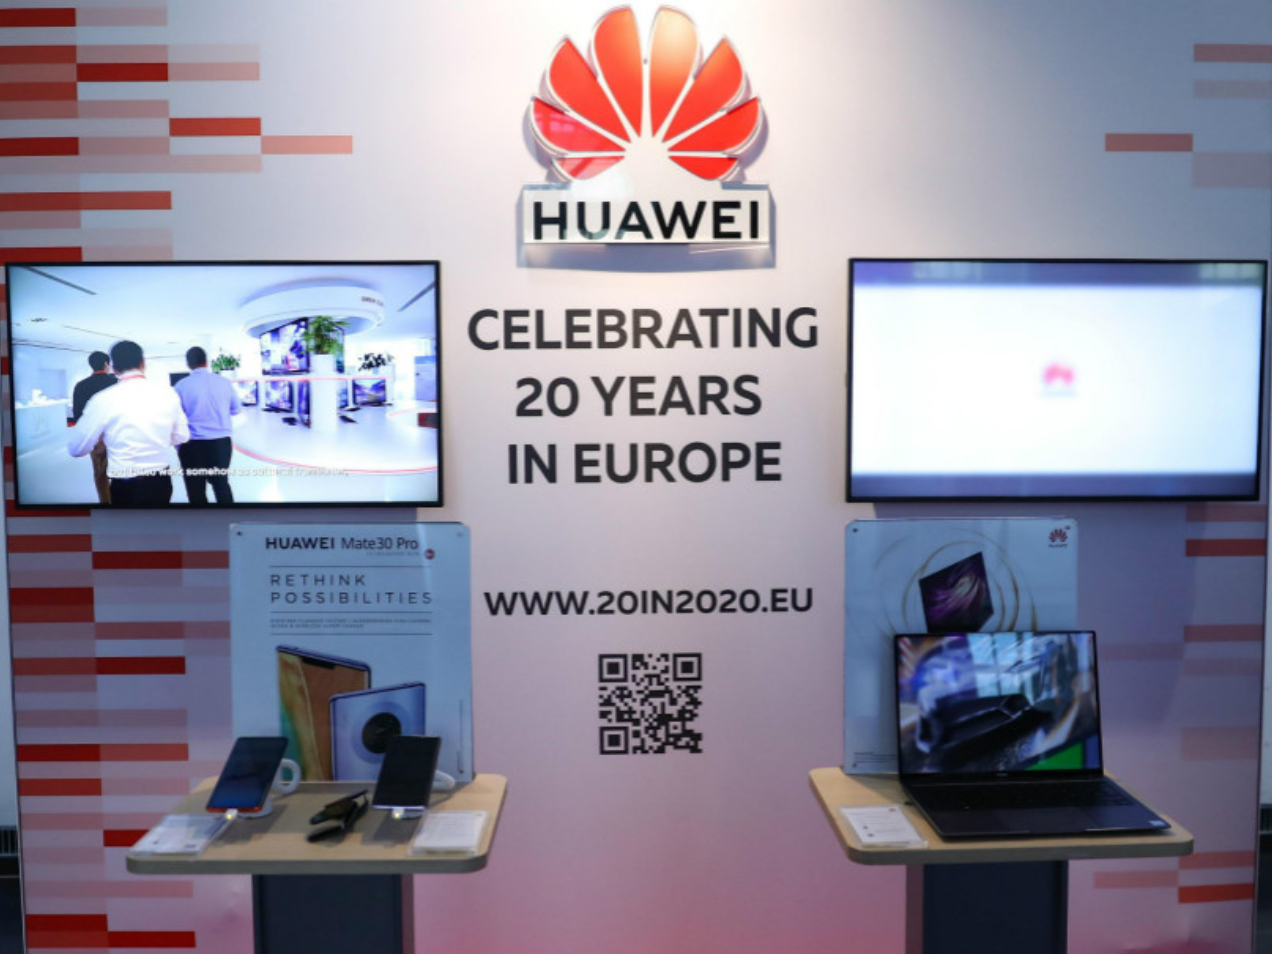 'Rejecting Huawei is rejecting opportunities and growth': Chinese envoy